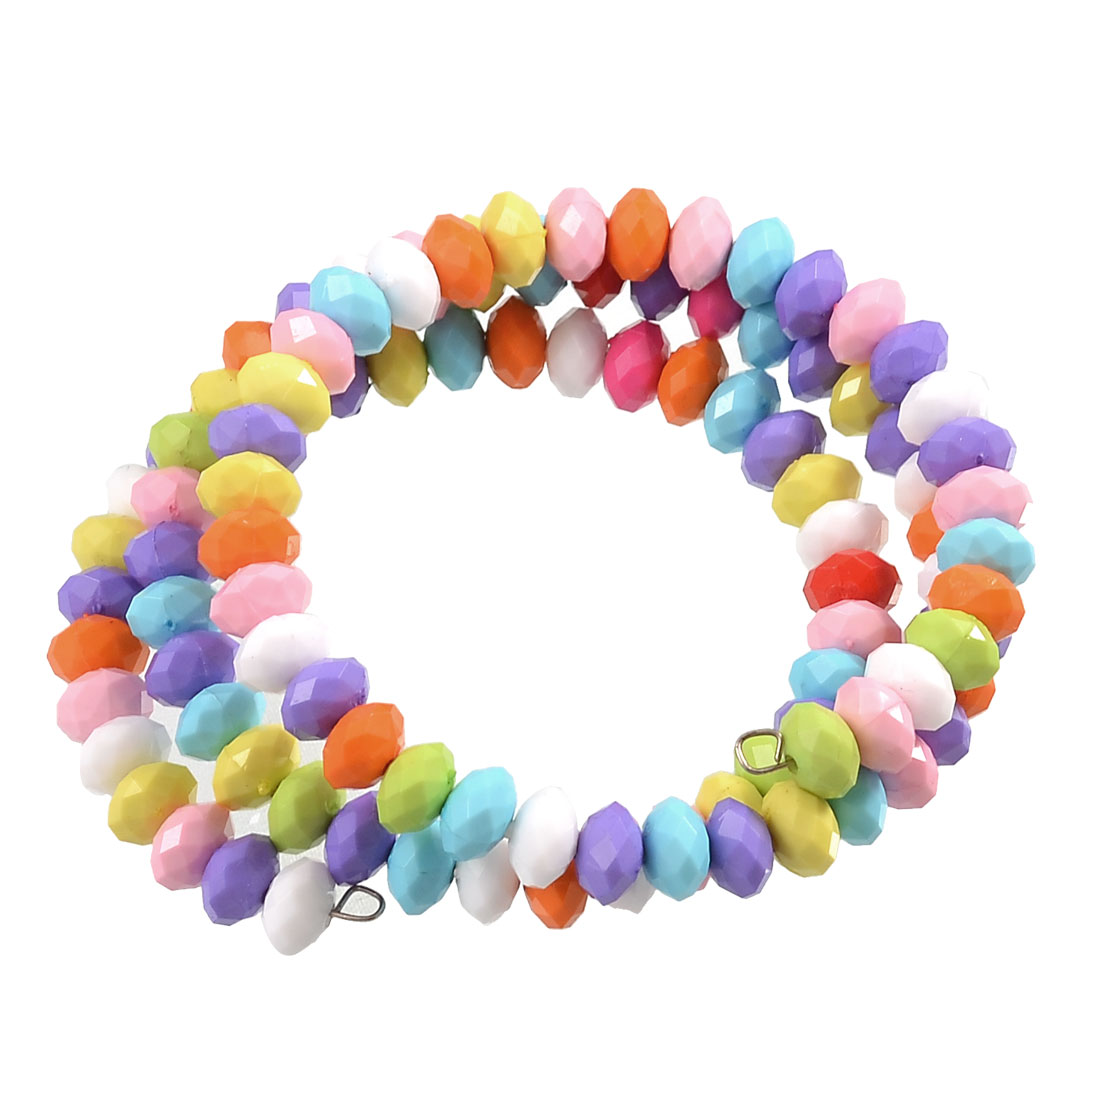 3 Layers Colorful Colorized Plastic Beads Bracelet Bangle Wristband